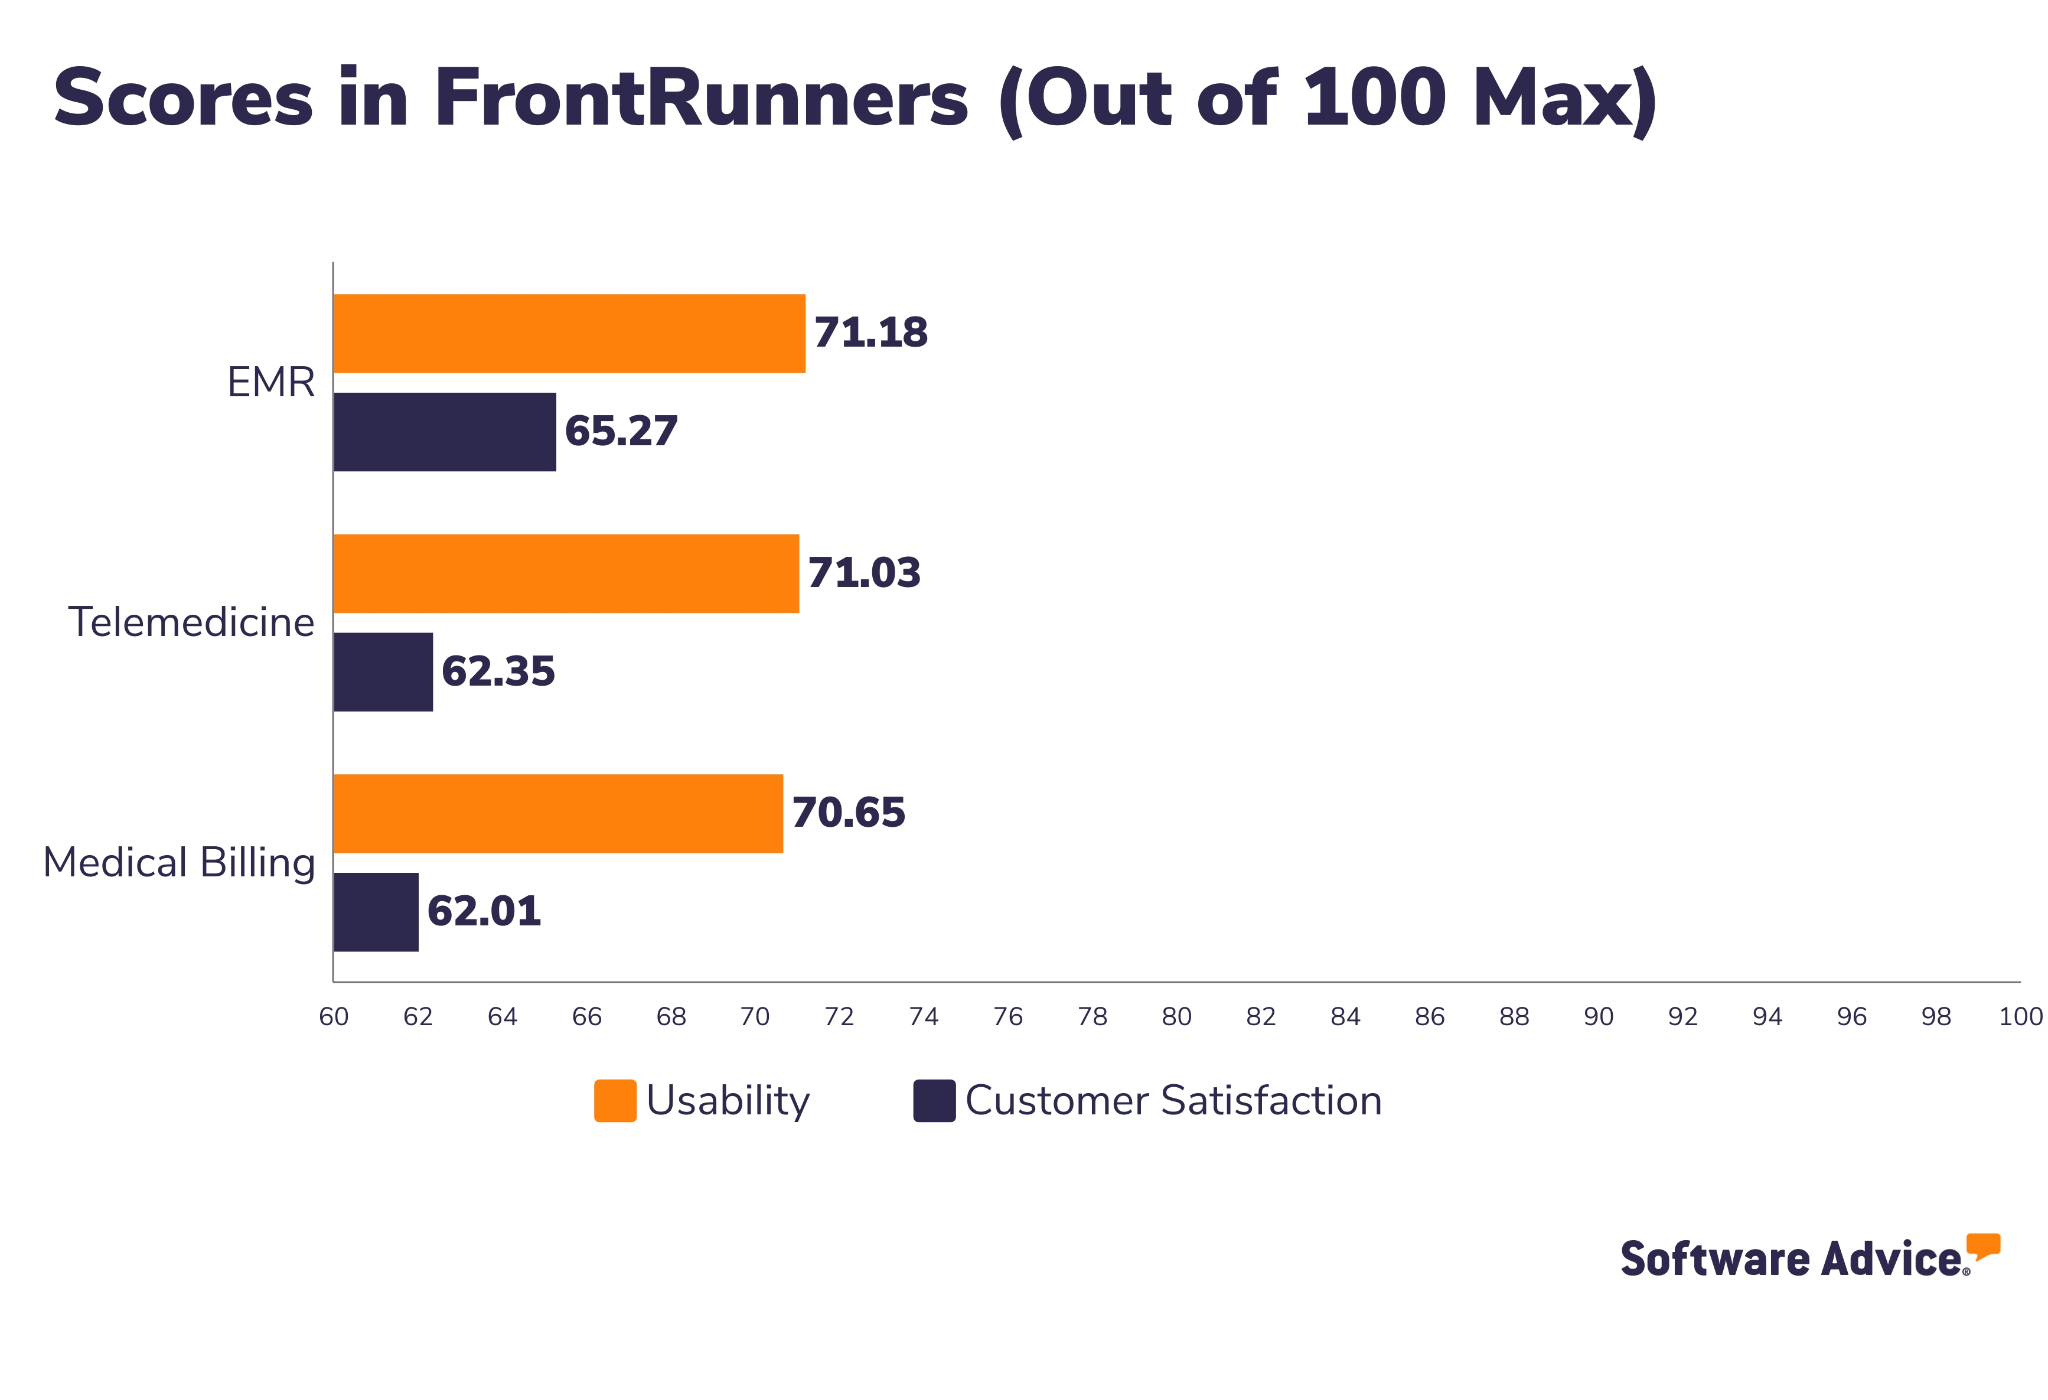 eClinicalWorks Software Advice FrontRunners Snapshot